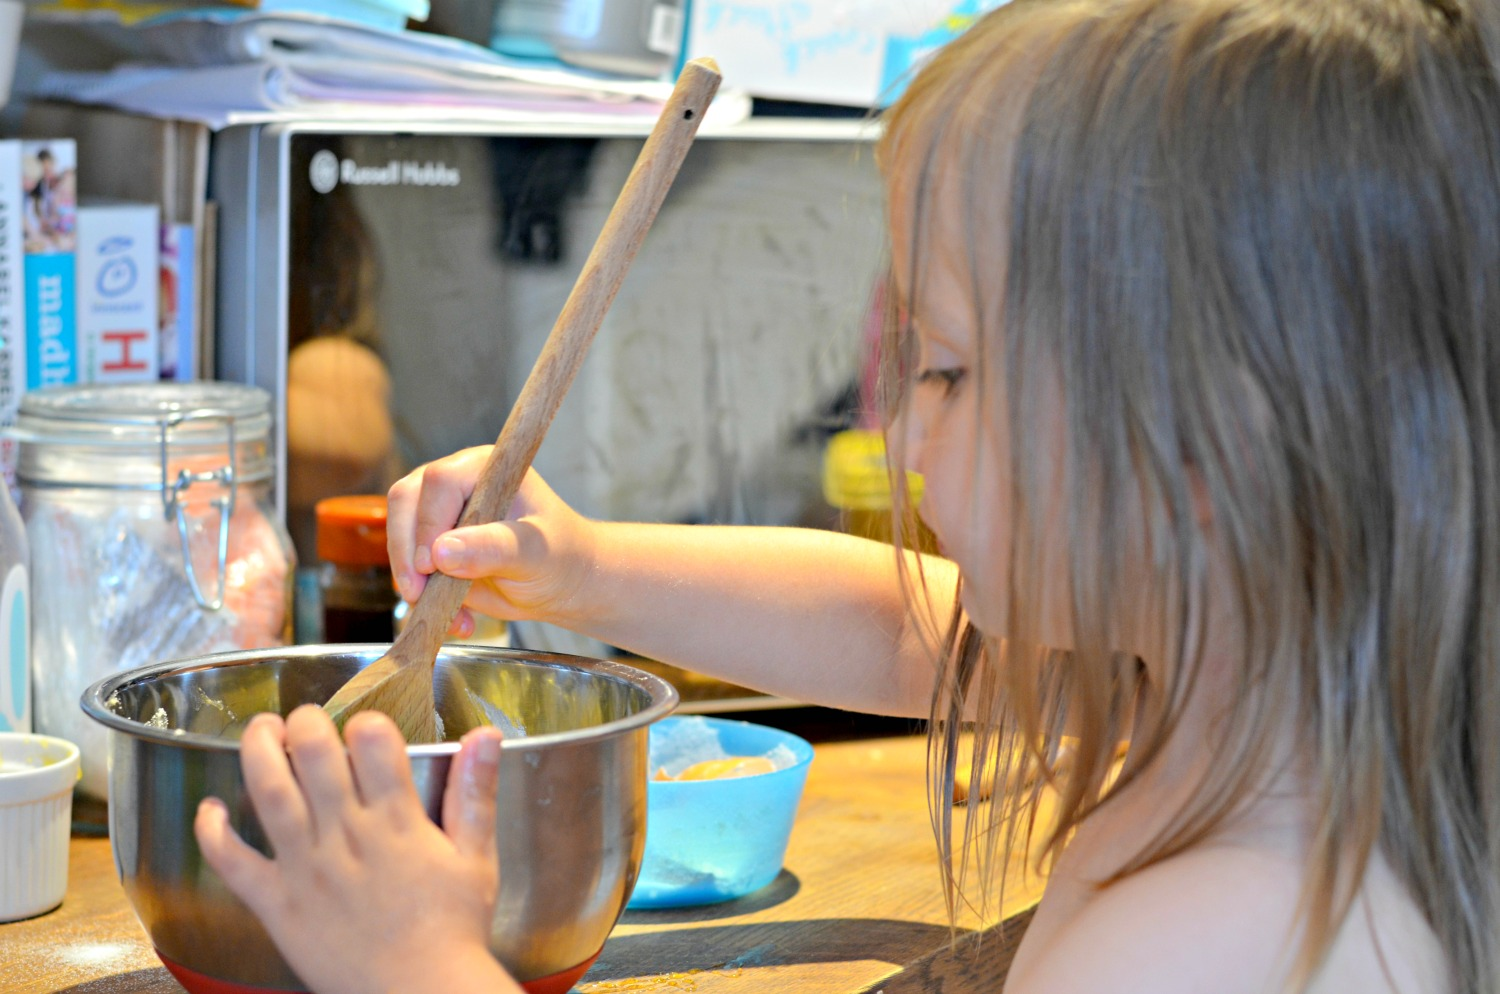 baking, cakes, syrup sponge, happy, kids baking, children, parenting, family, love, kitchen, foodie, food, activity